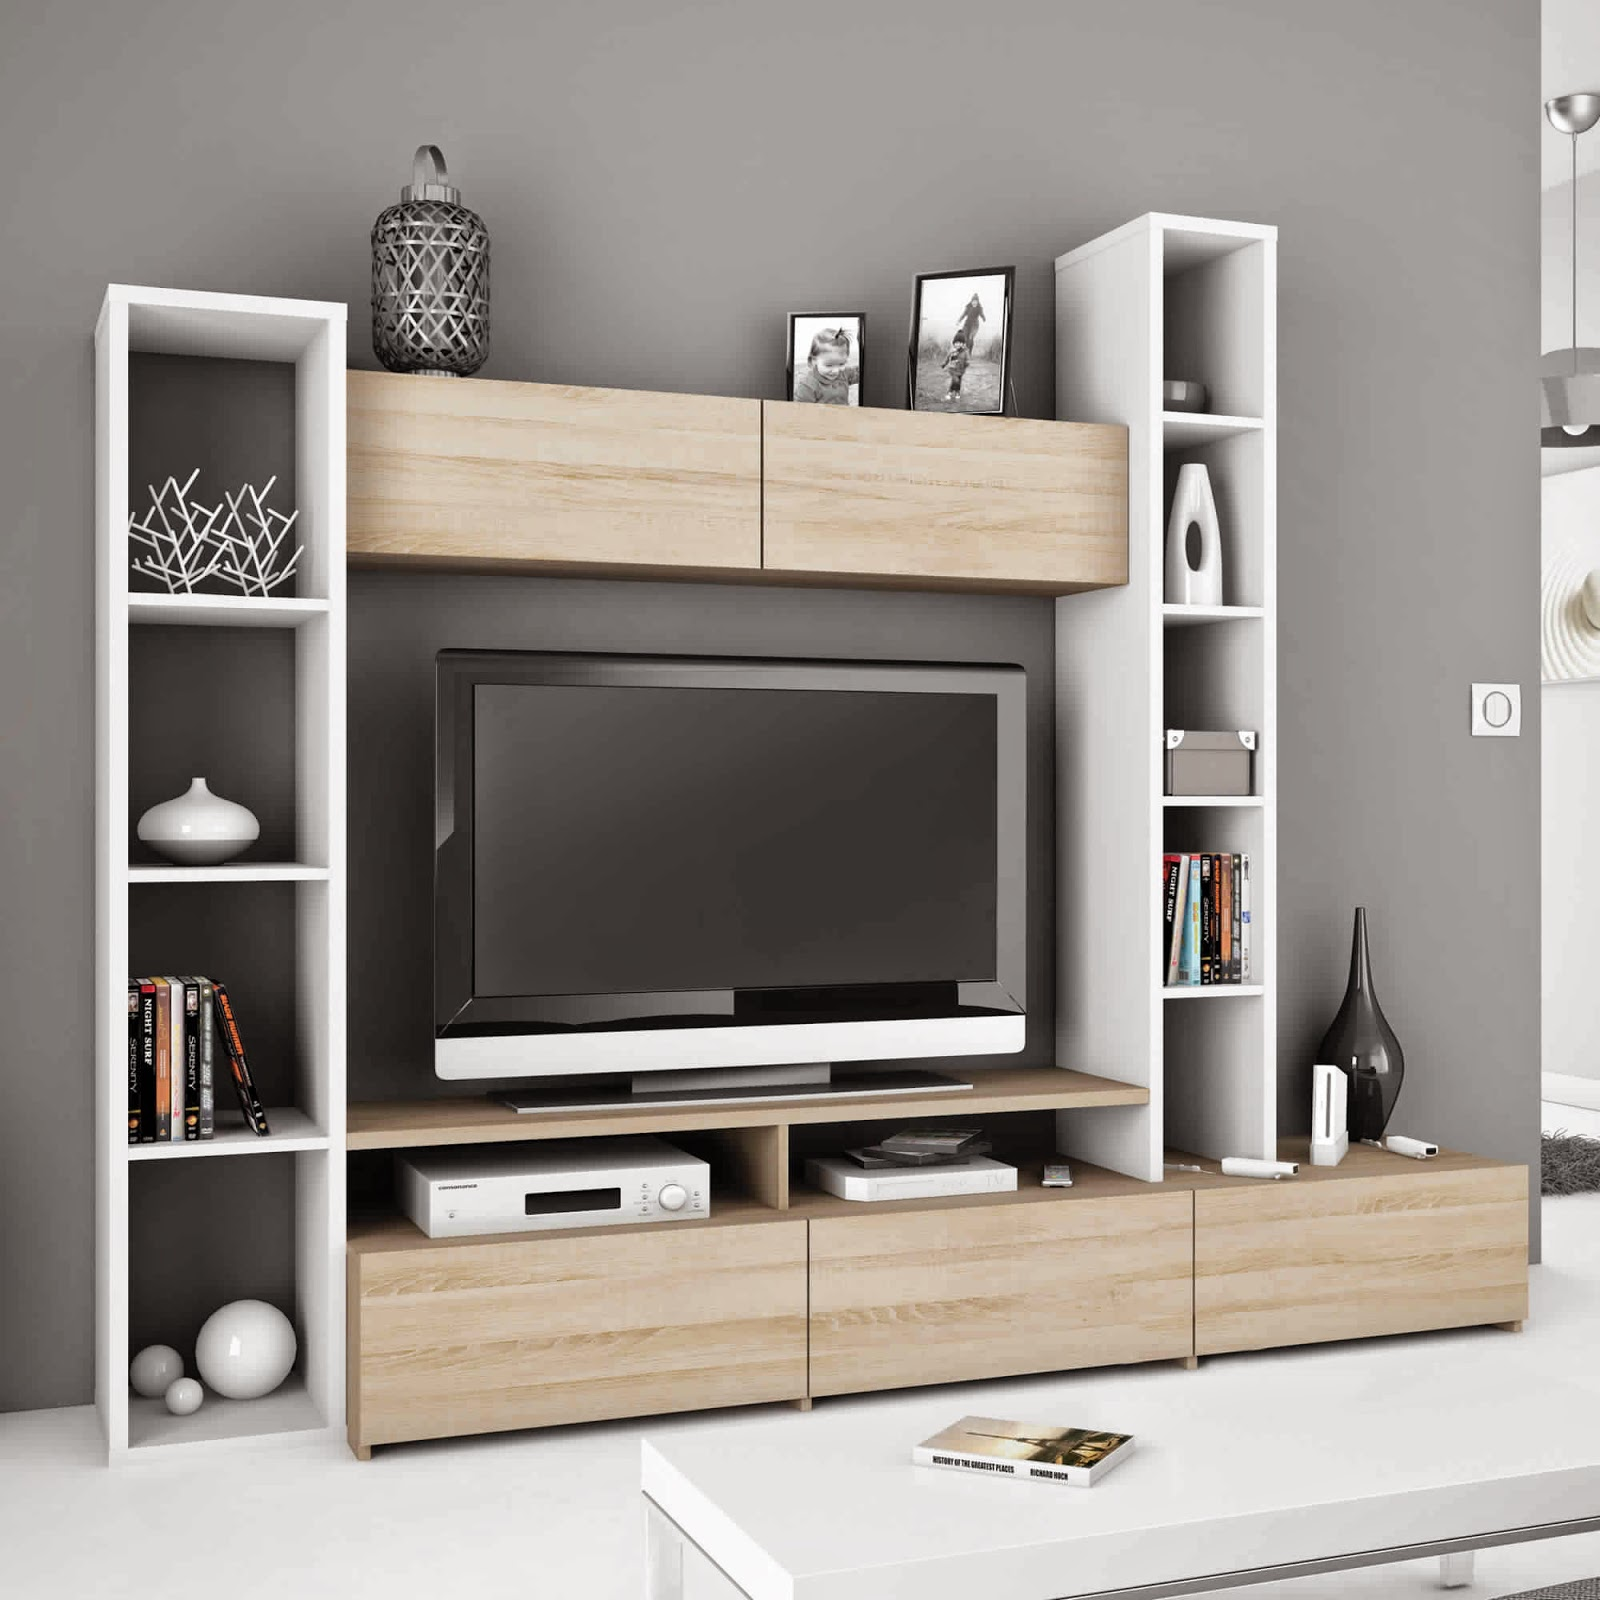 meuble tv avec rangement pas cher royal sofa id e de canap et meuble maison. Black Bedroom Furniture Sets. Home Design Ideas